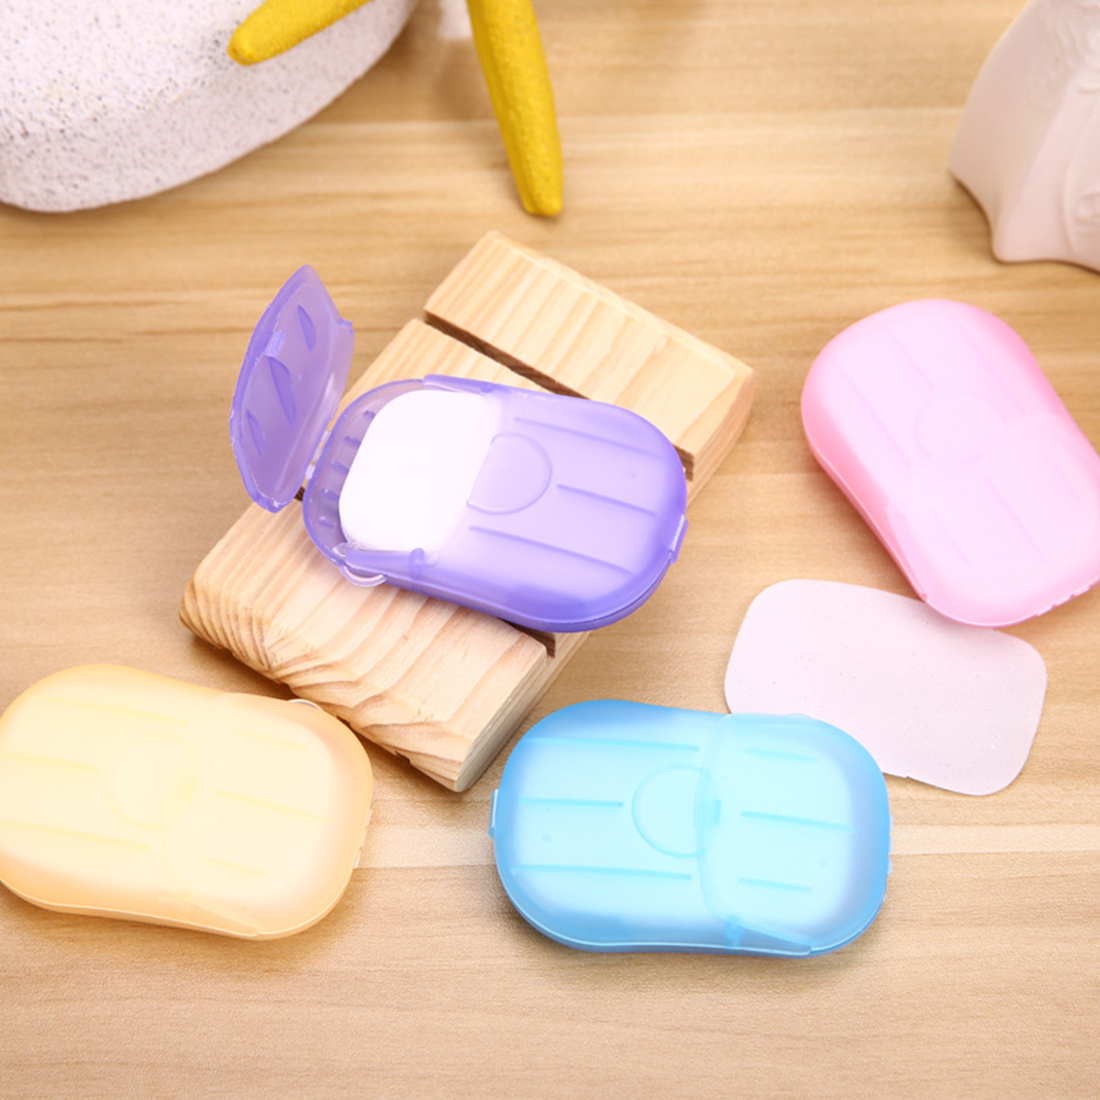 20pcs Random Disposable Boxed Soap Paper Travel Portable Outdoor Hand Washing Cleaning Scented Slice Sheets Mini Paper Soap